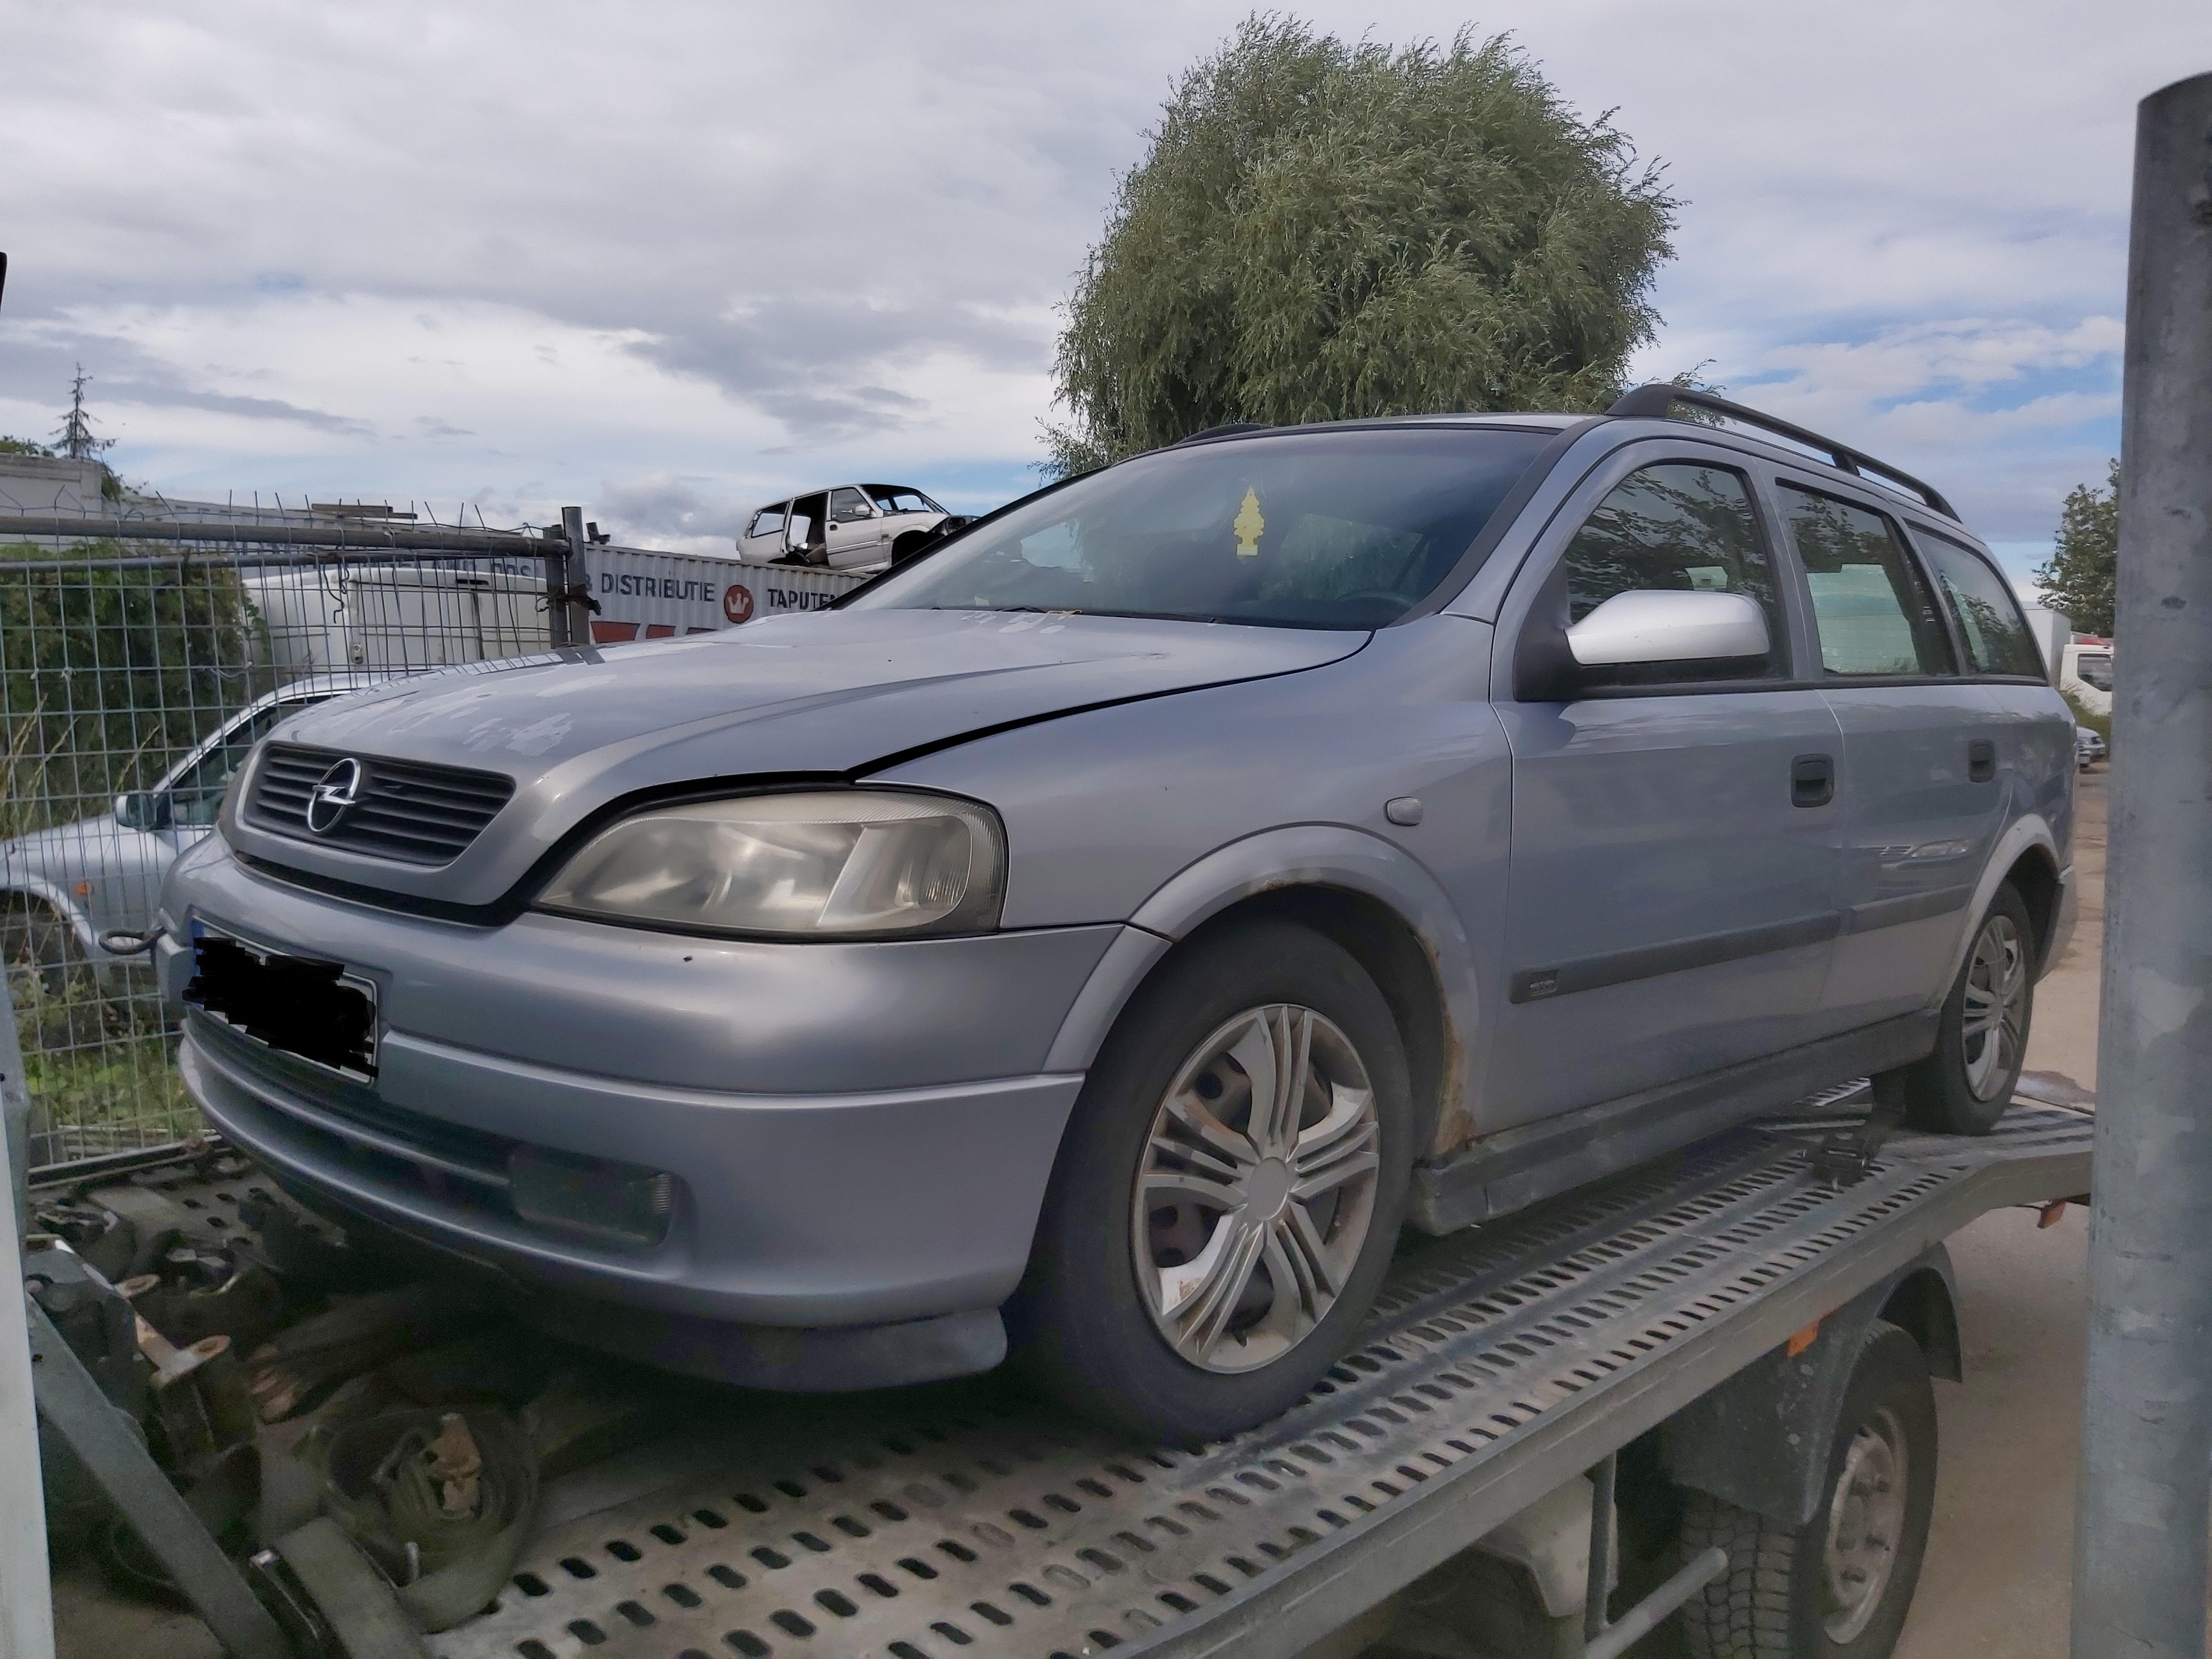 Used Car Parts Foto 8 Opel ASTRA 2000 2.0 Mechanical Universal 4/5 d. Grey 2020-7-30 A5479